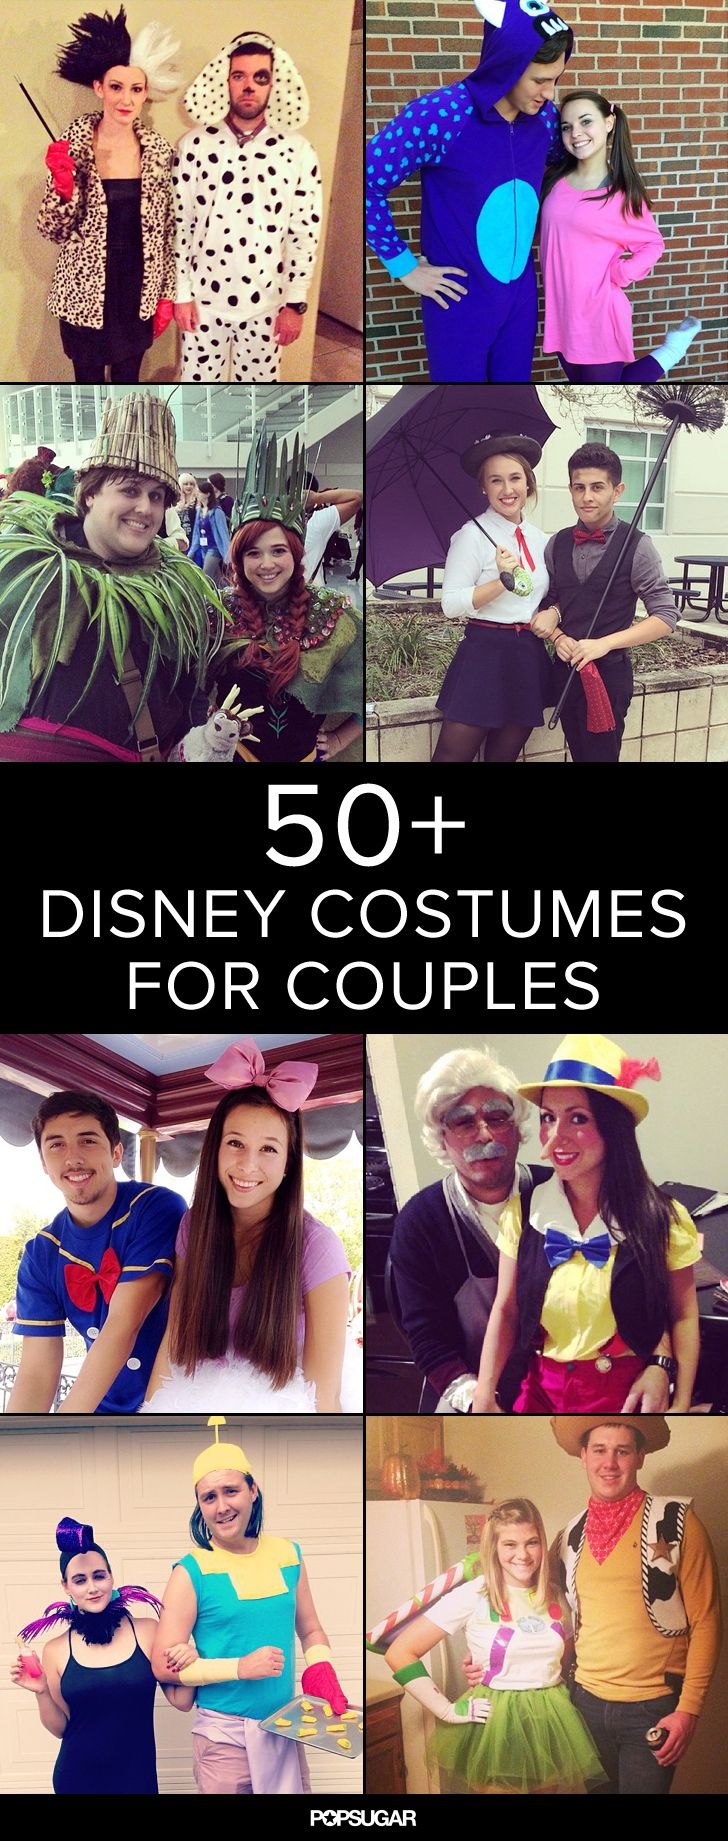 50+ Adorable Disney Couples Costumes